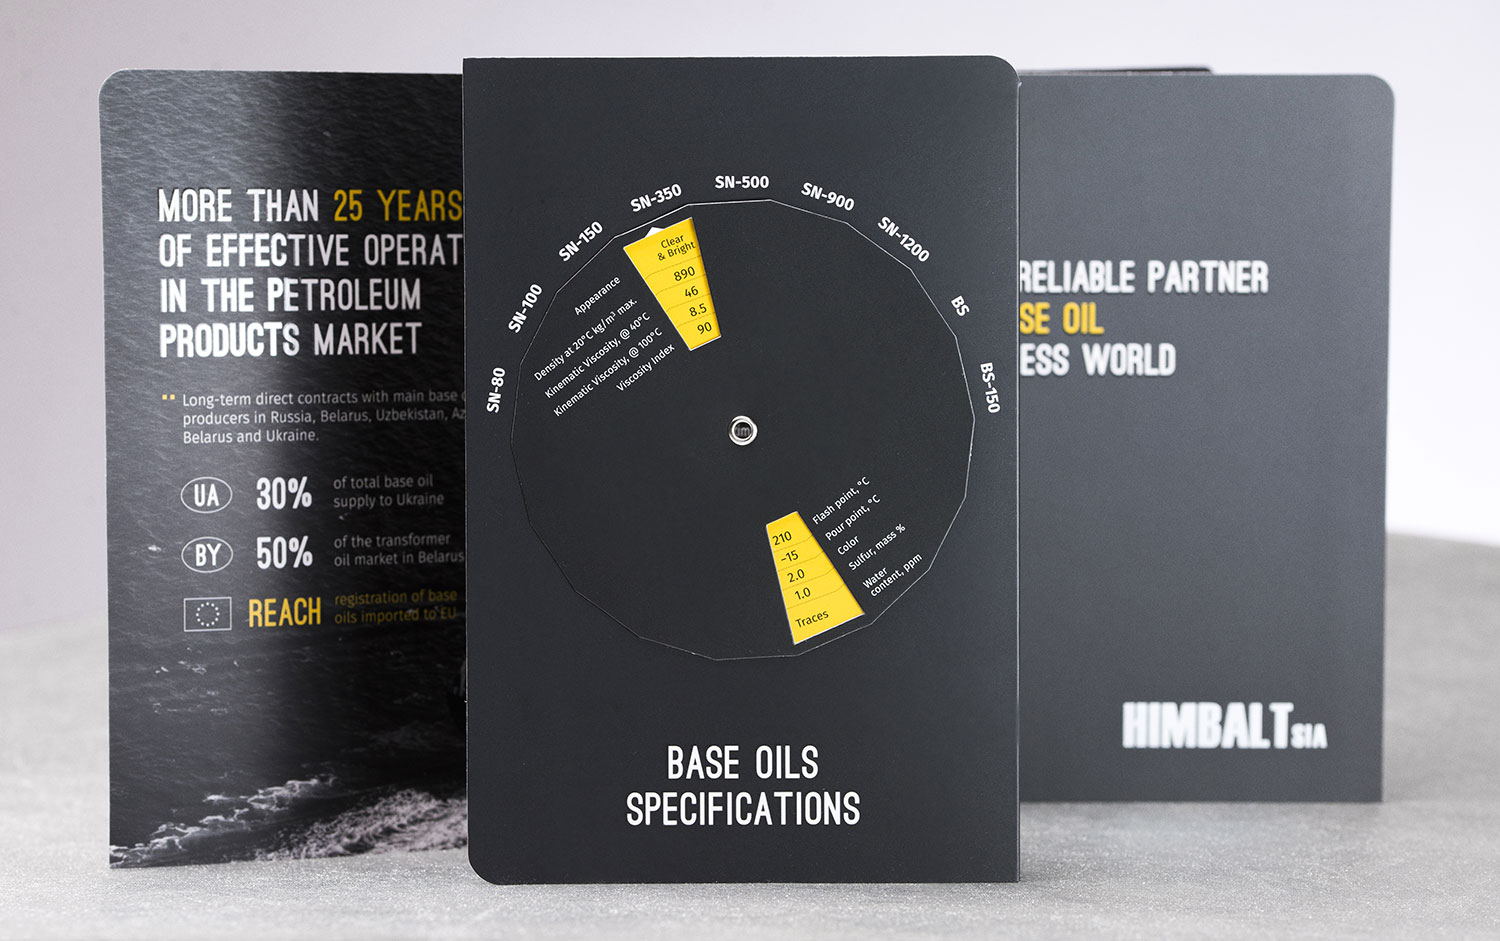 HIMBALT booklet and handbook. Base oil specifications.